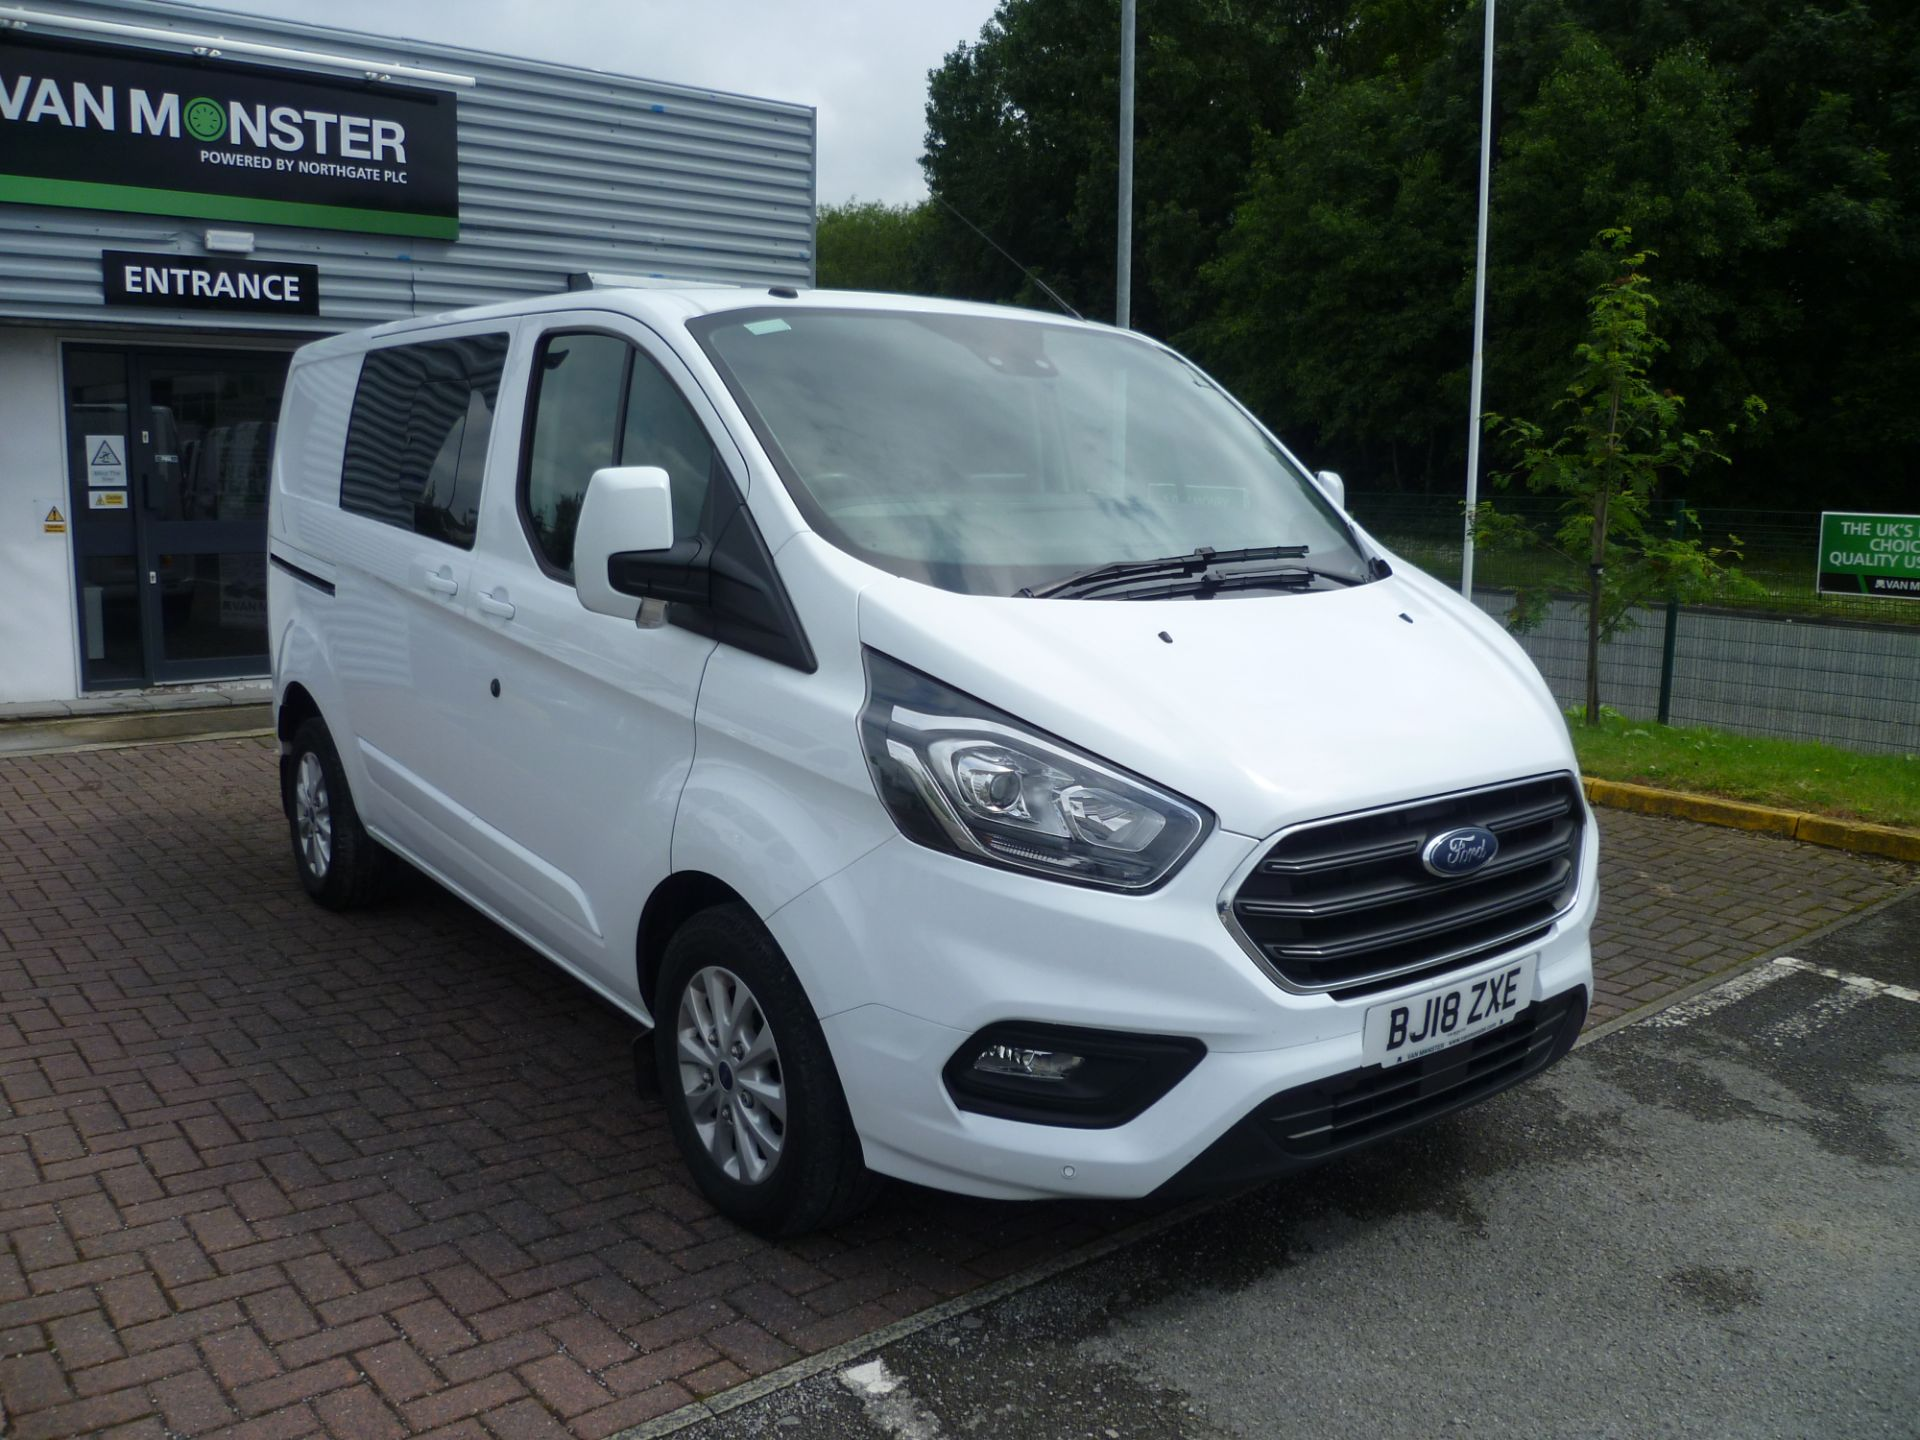 2018 Ford Transit Custom 2.0 Ecoblue 130Ps Low Roof D/Cab Limited Van EURO 6 (BJ18ZXE)